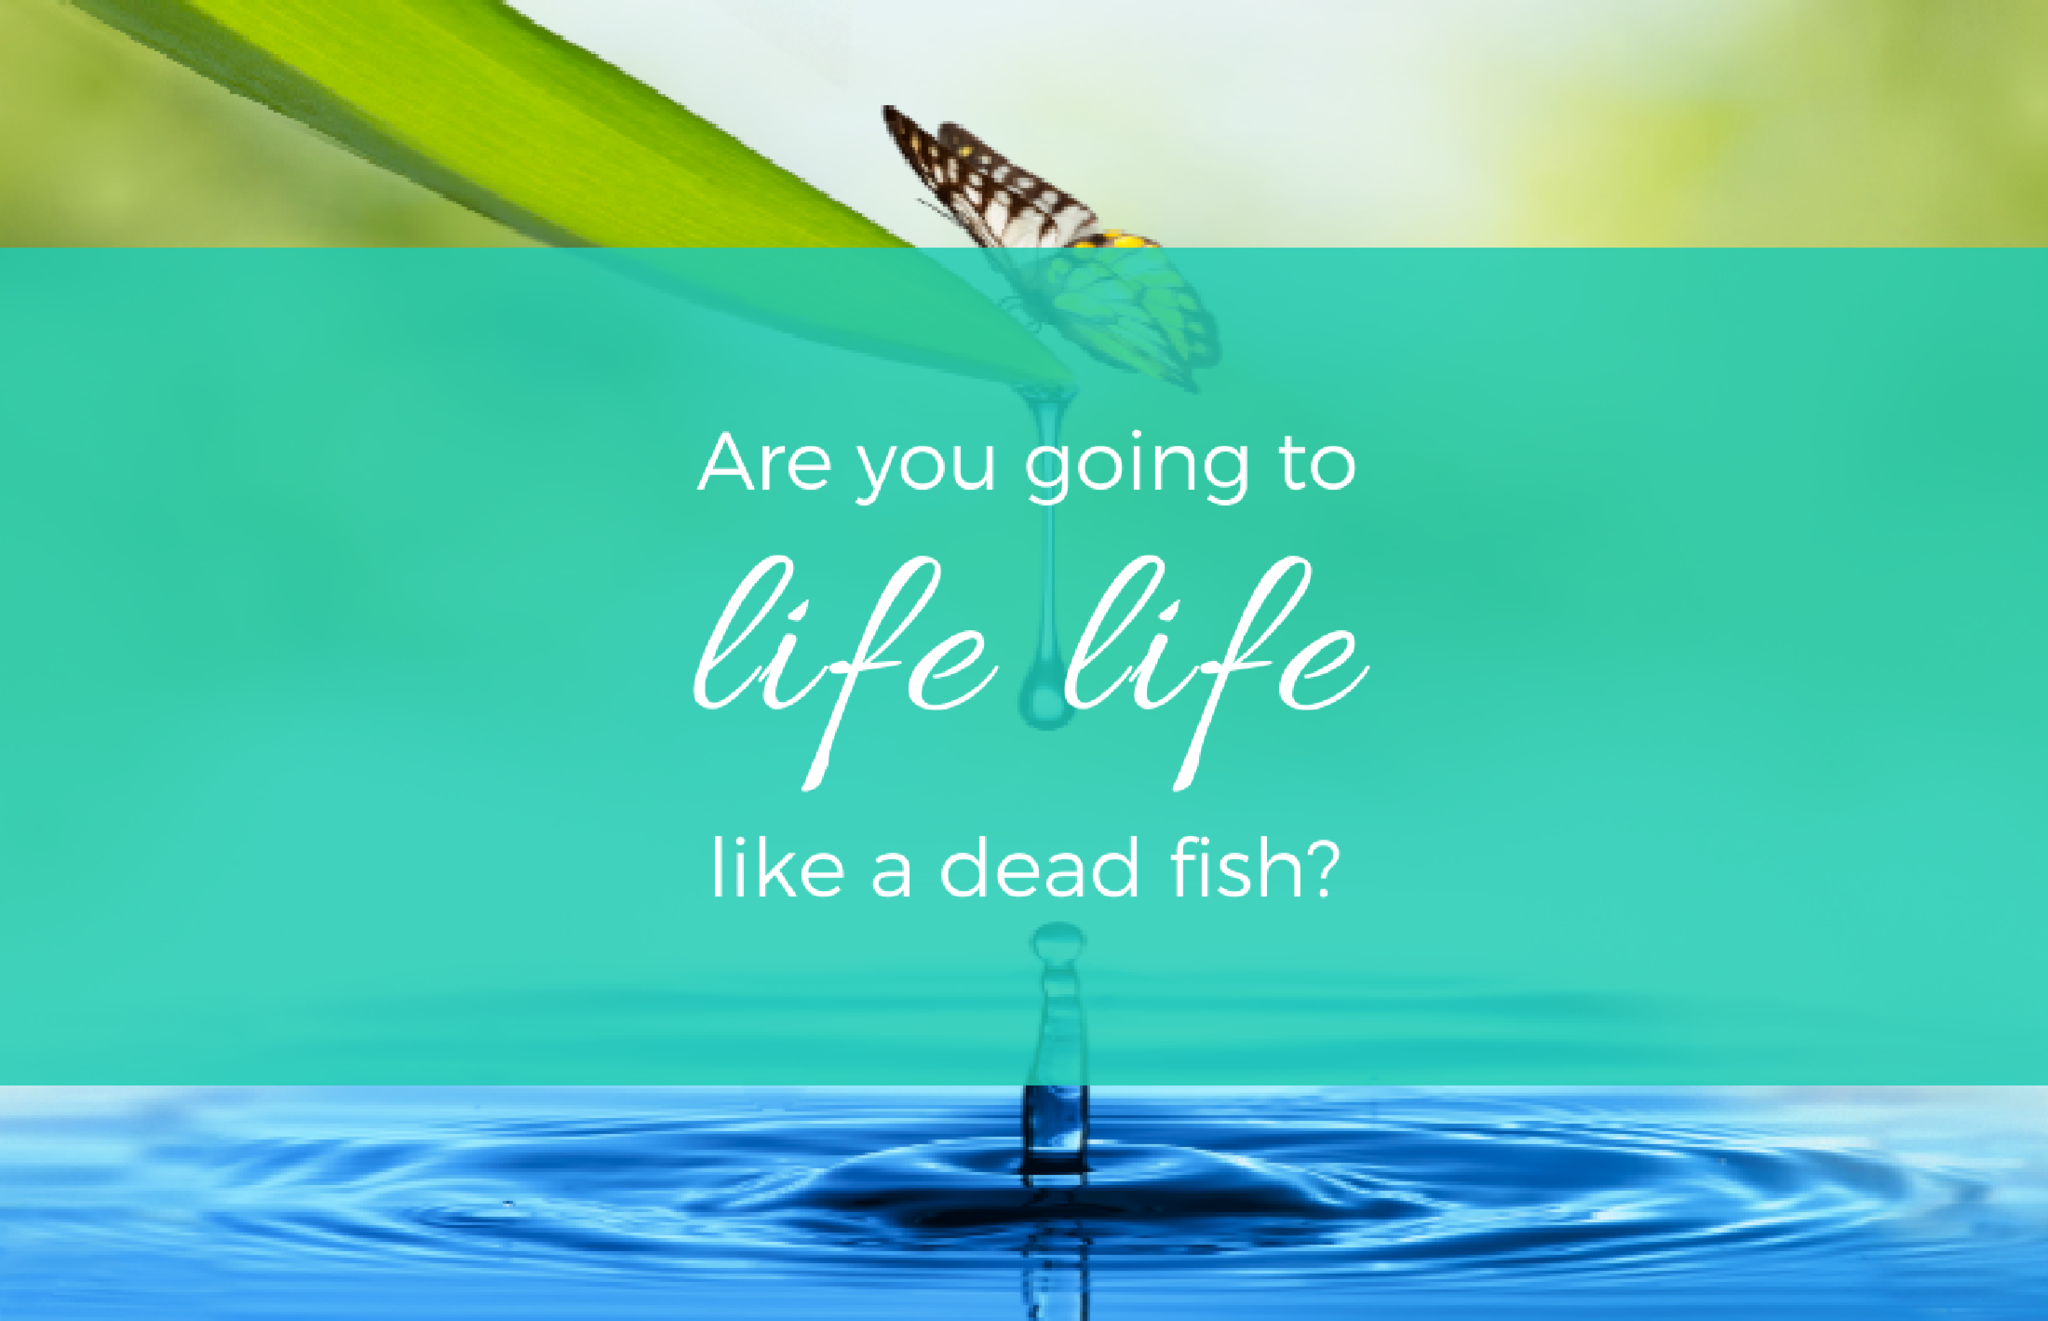 Are you going to live life like a dead fish?